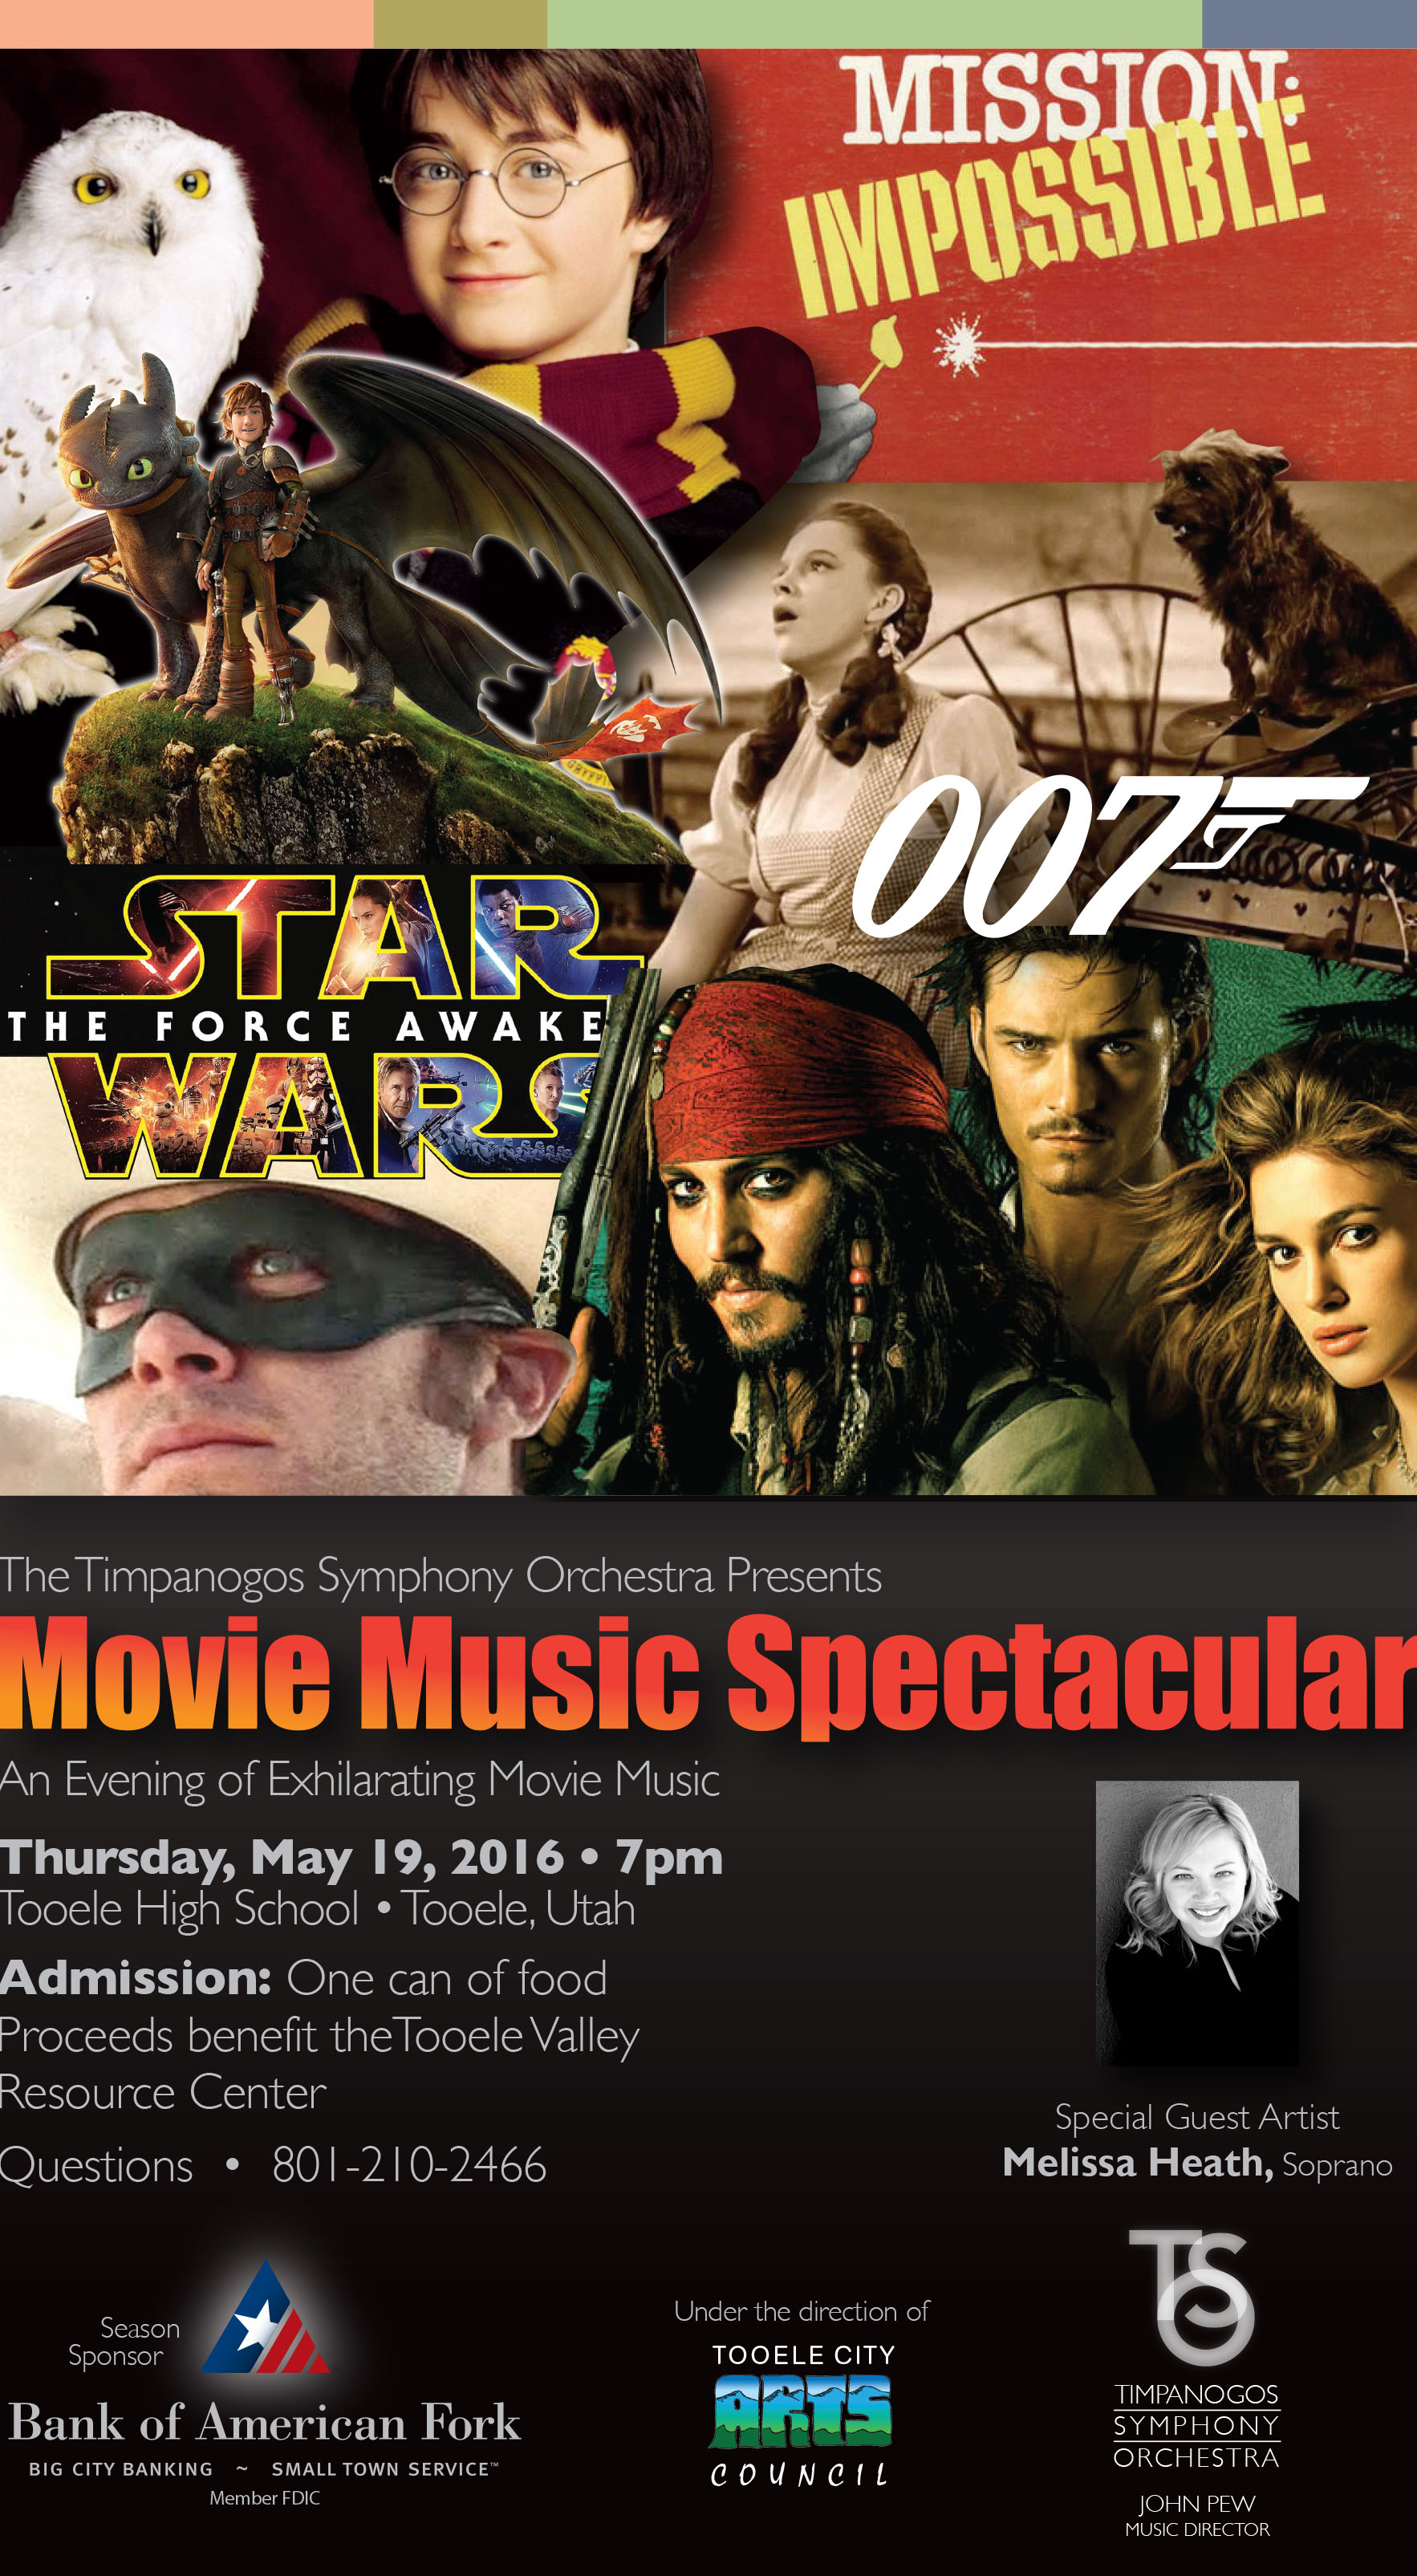 Movie Music Spectacular with the Timpanogos Symphony Orchestra @ Tooele High School Auditorium | Tooele | Utah | United States